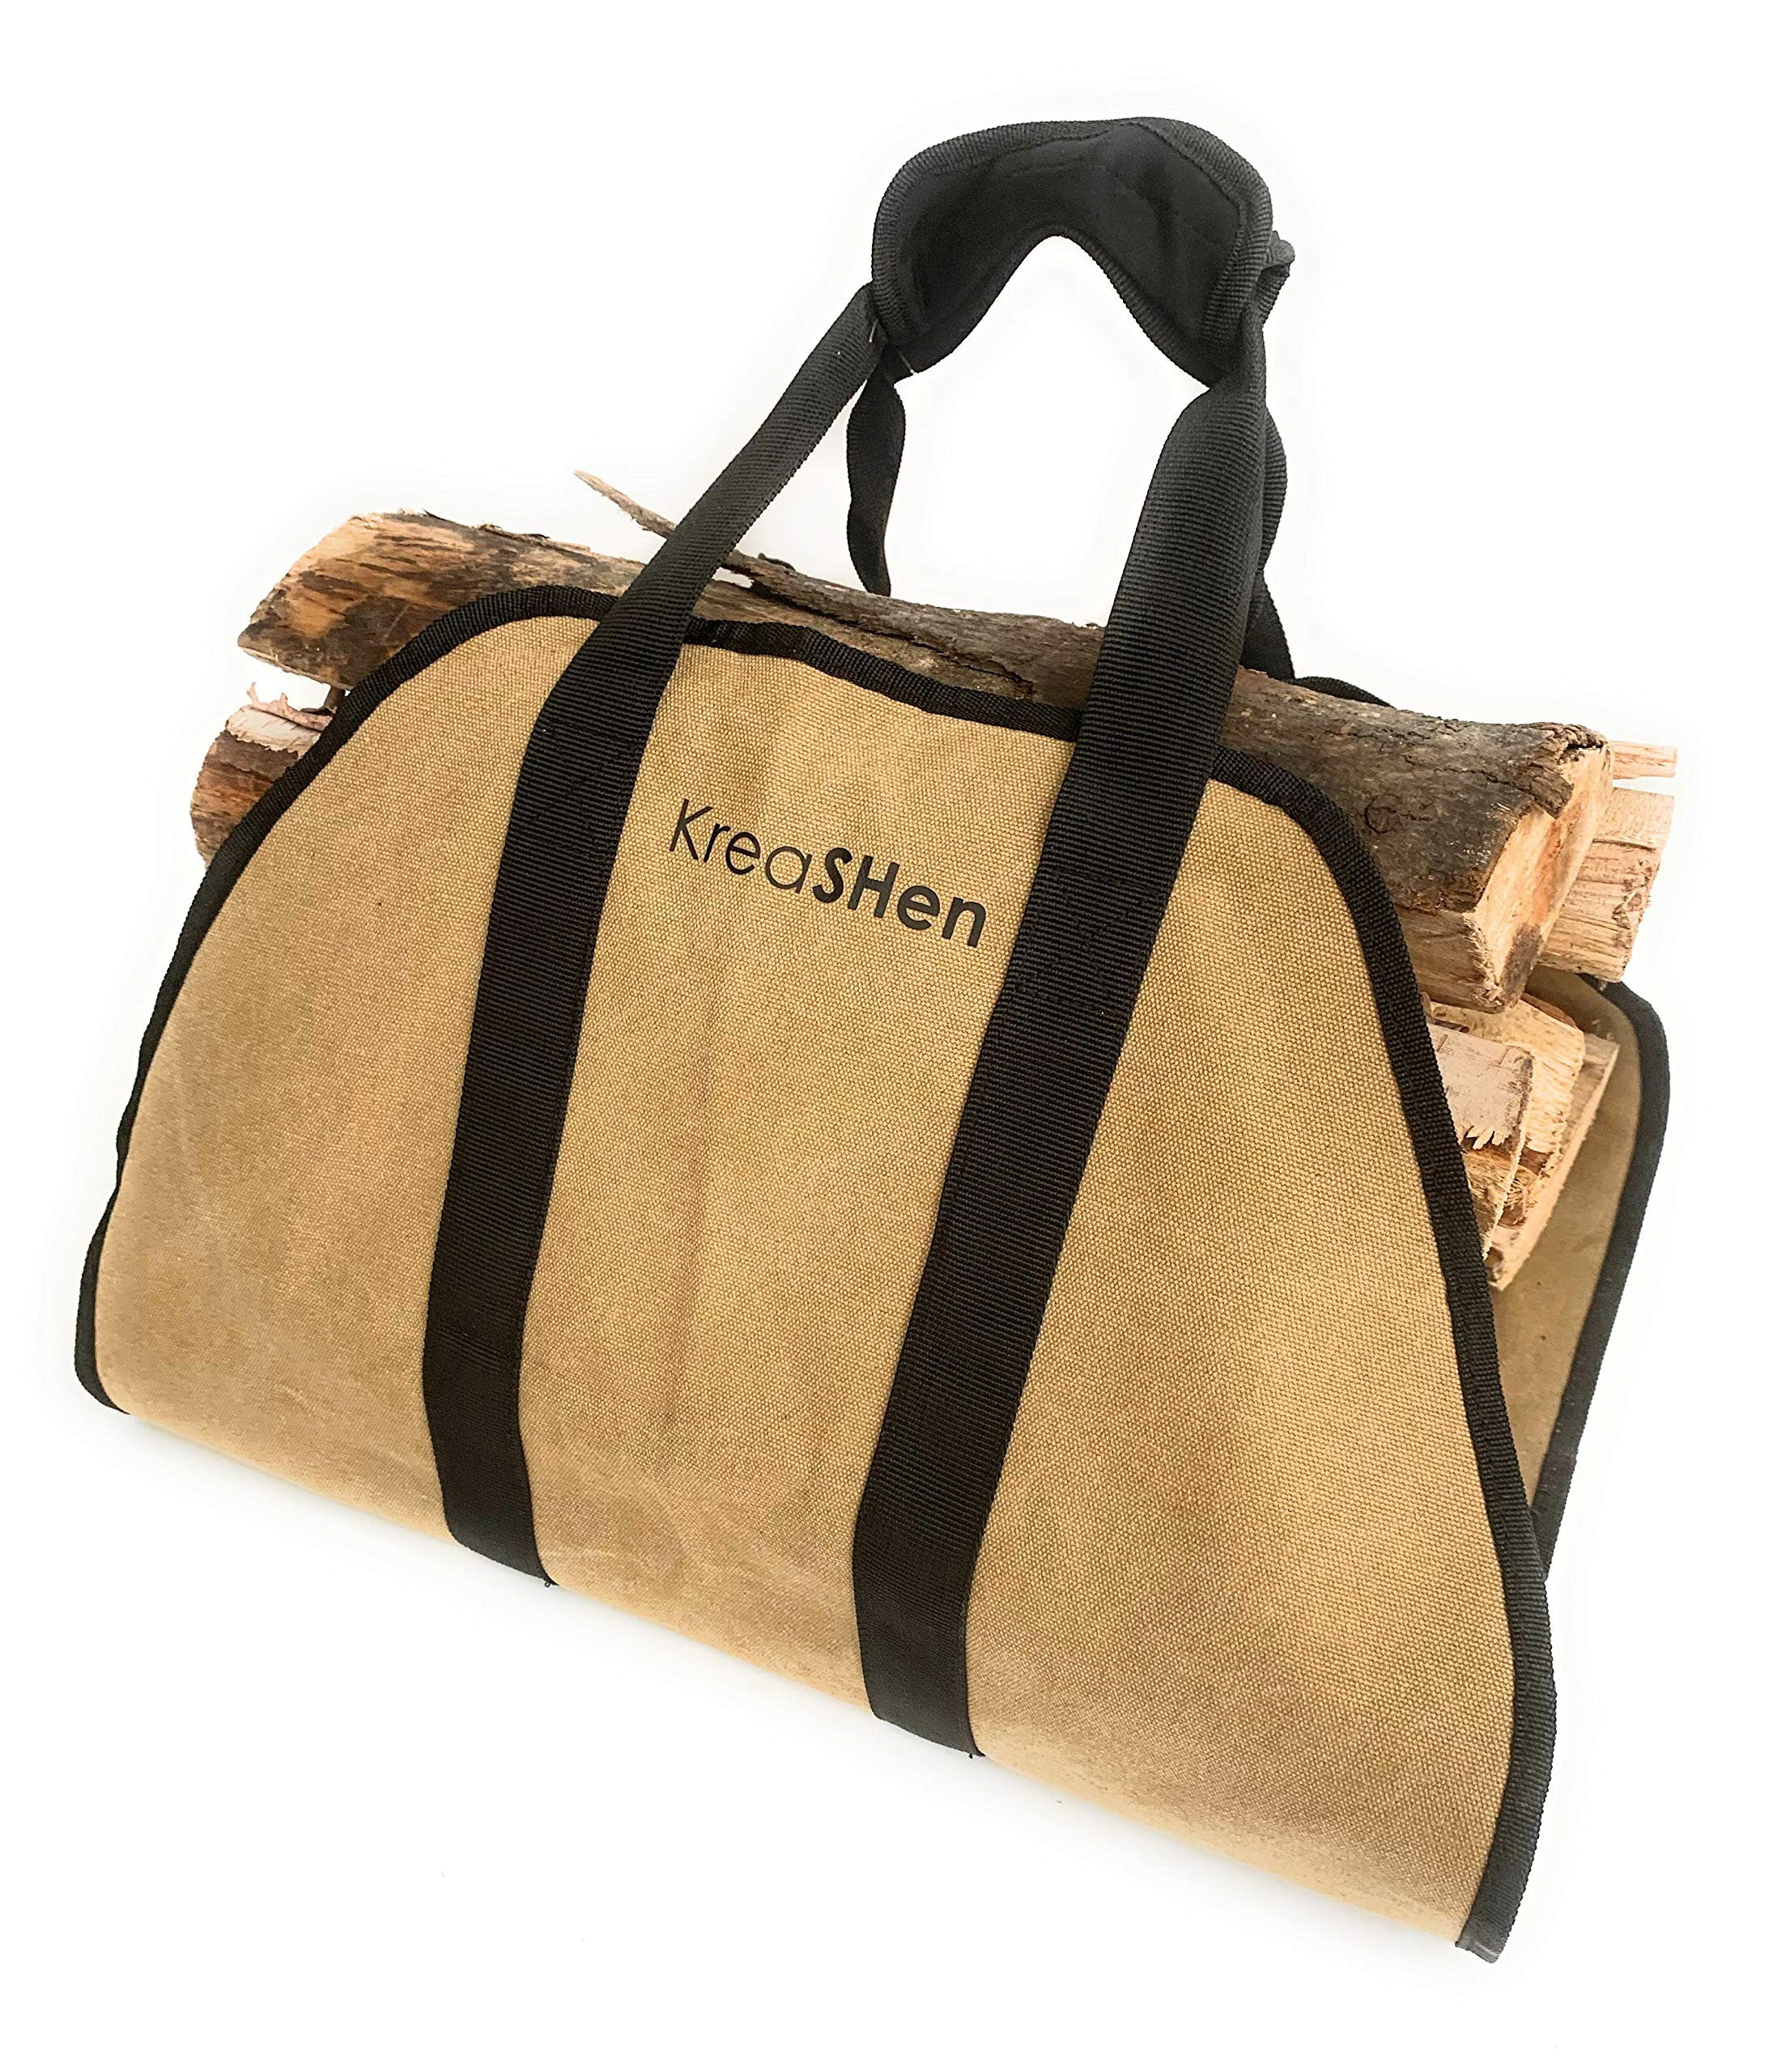 Firewood Log Carrier (Waxed Canvas) Water Resistant Tote with Padded Handles by KreaSHen